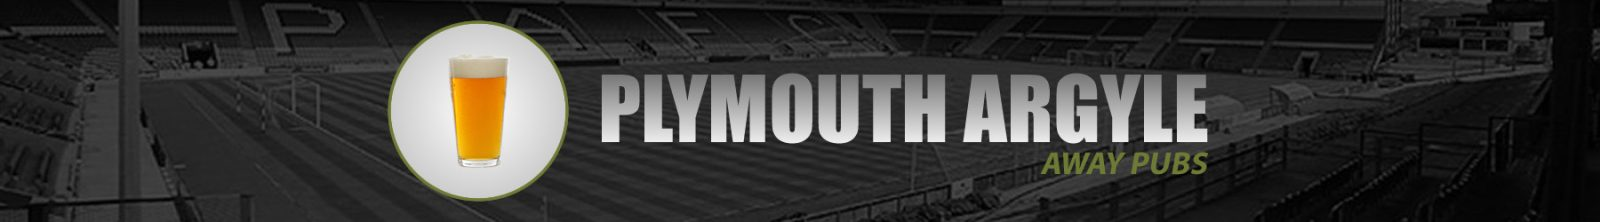 Plymouth Argyle Away Pubs